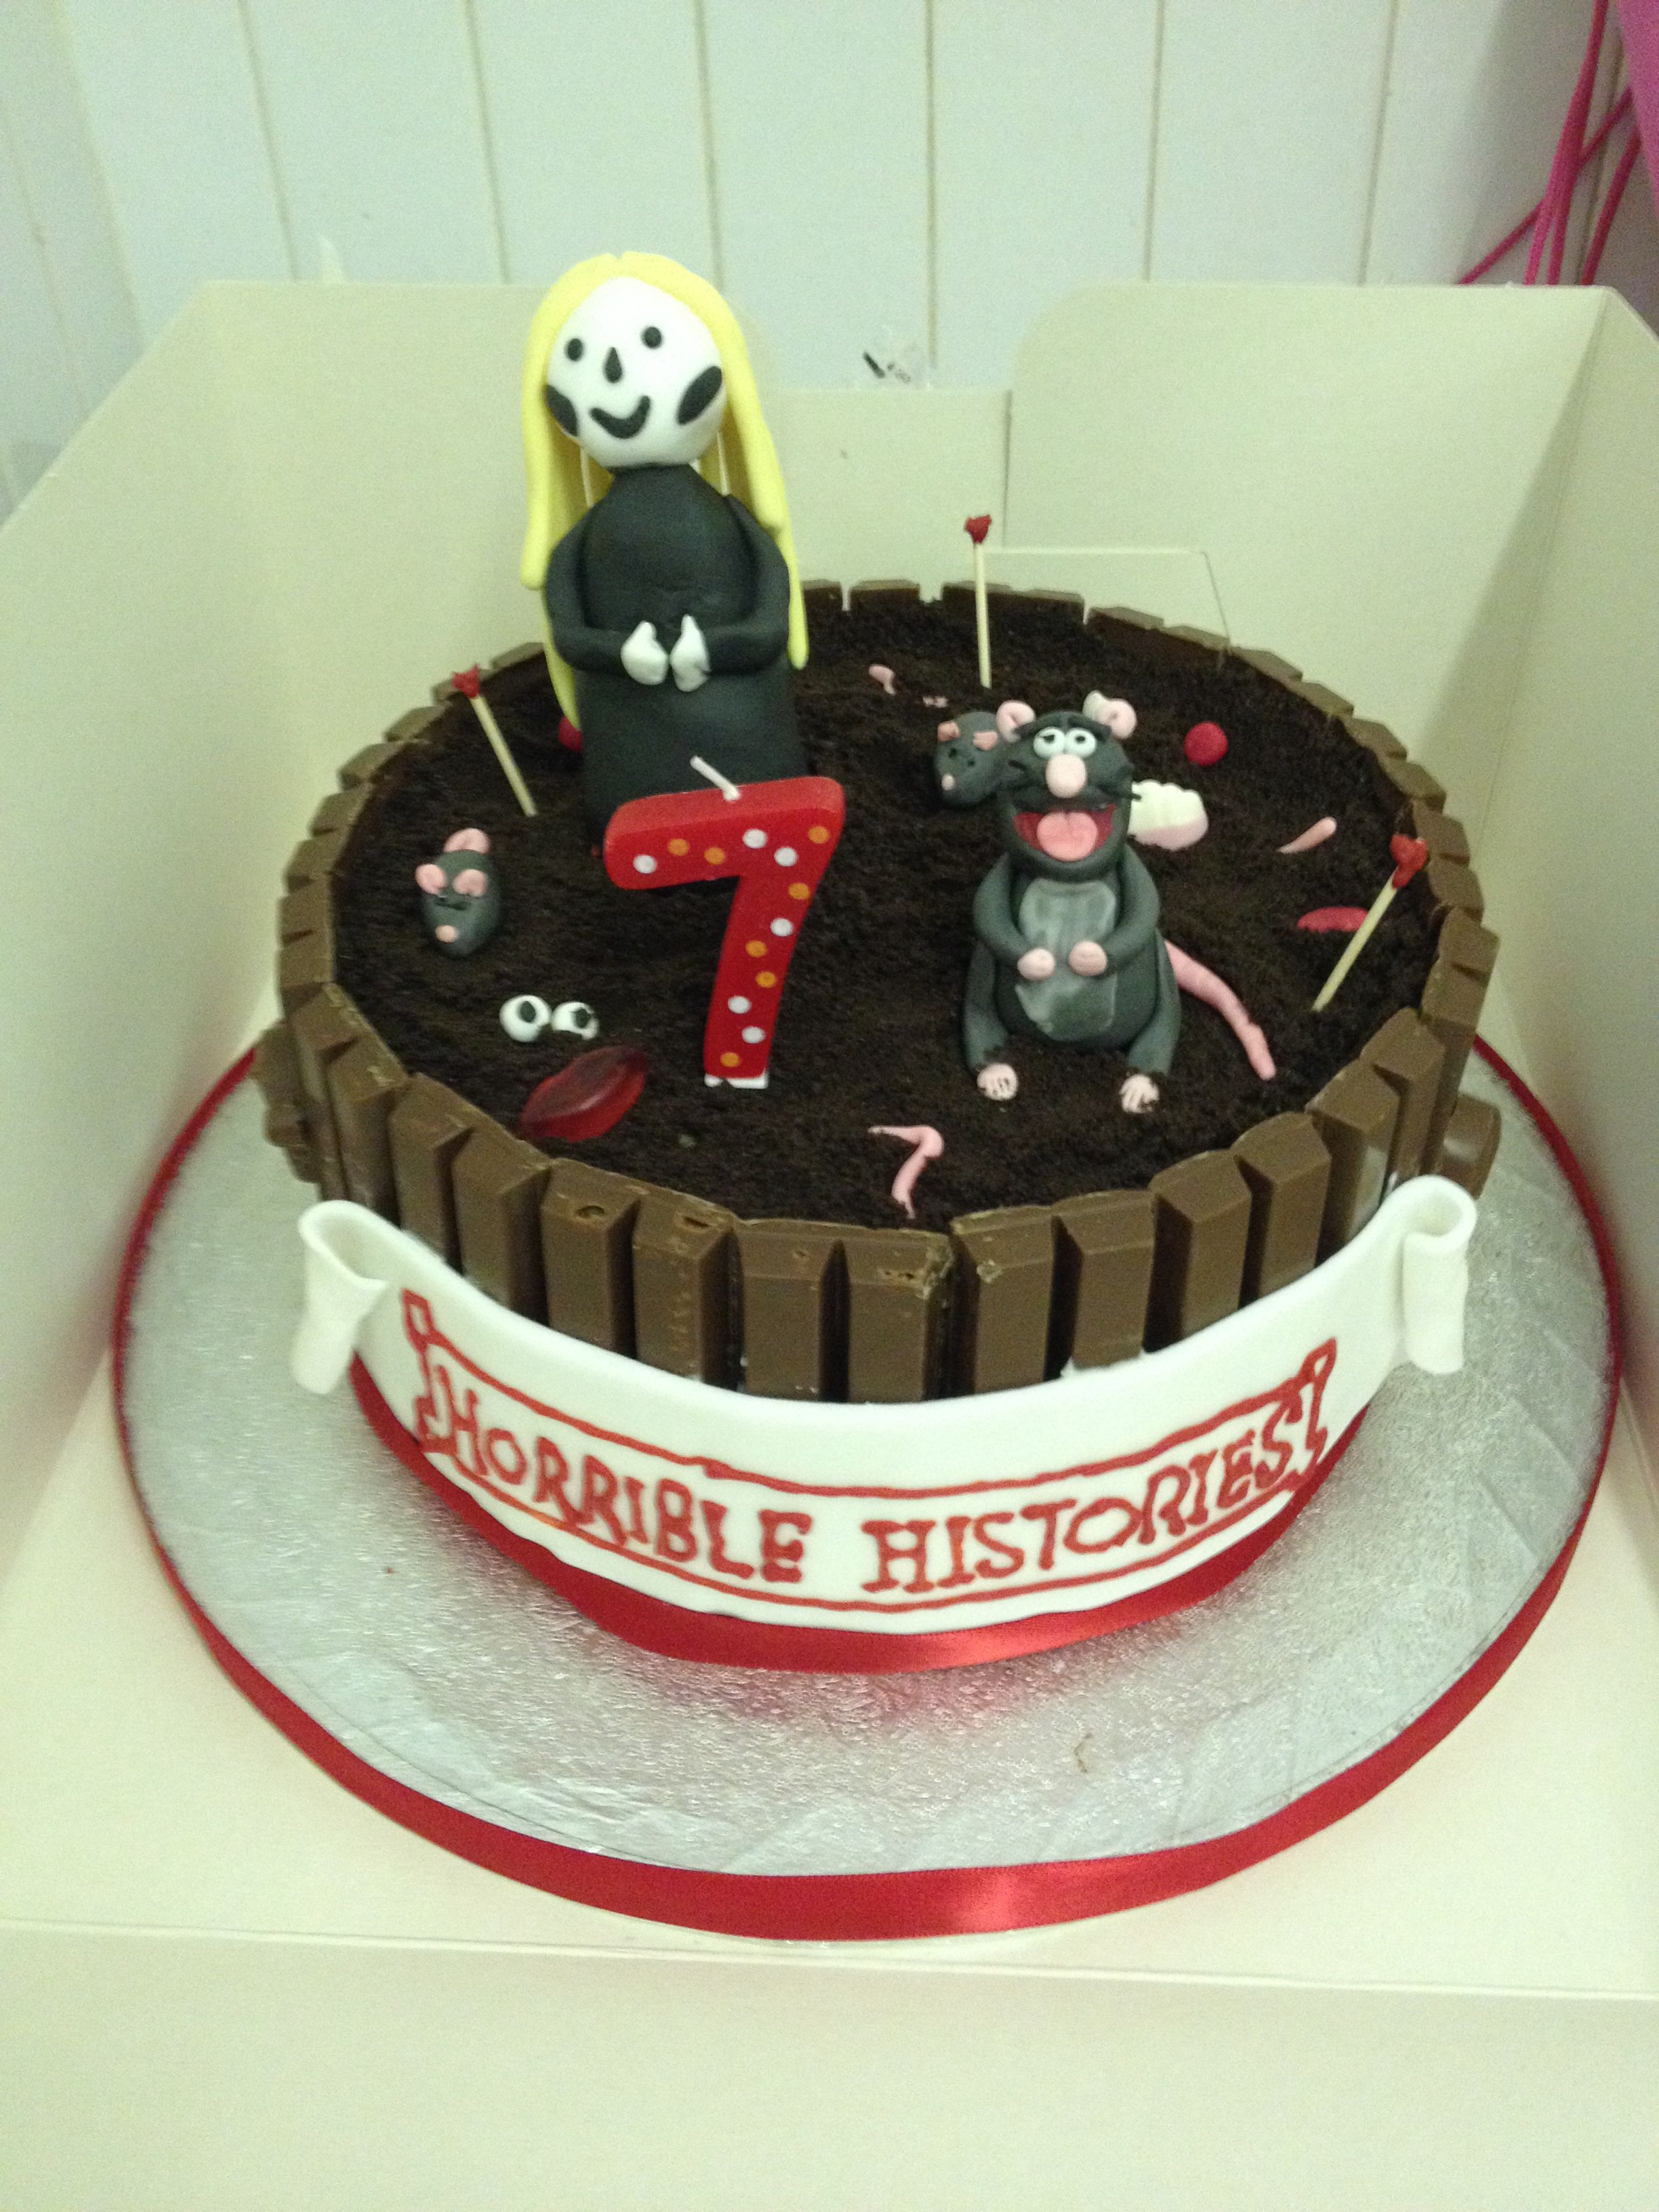 Horrible histories kit kat cake with popping candy